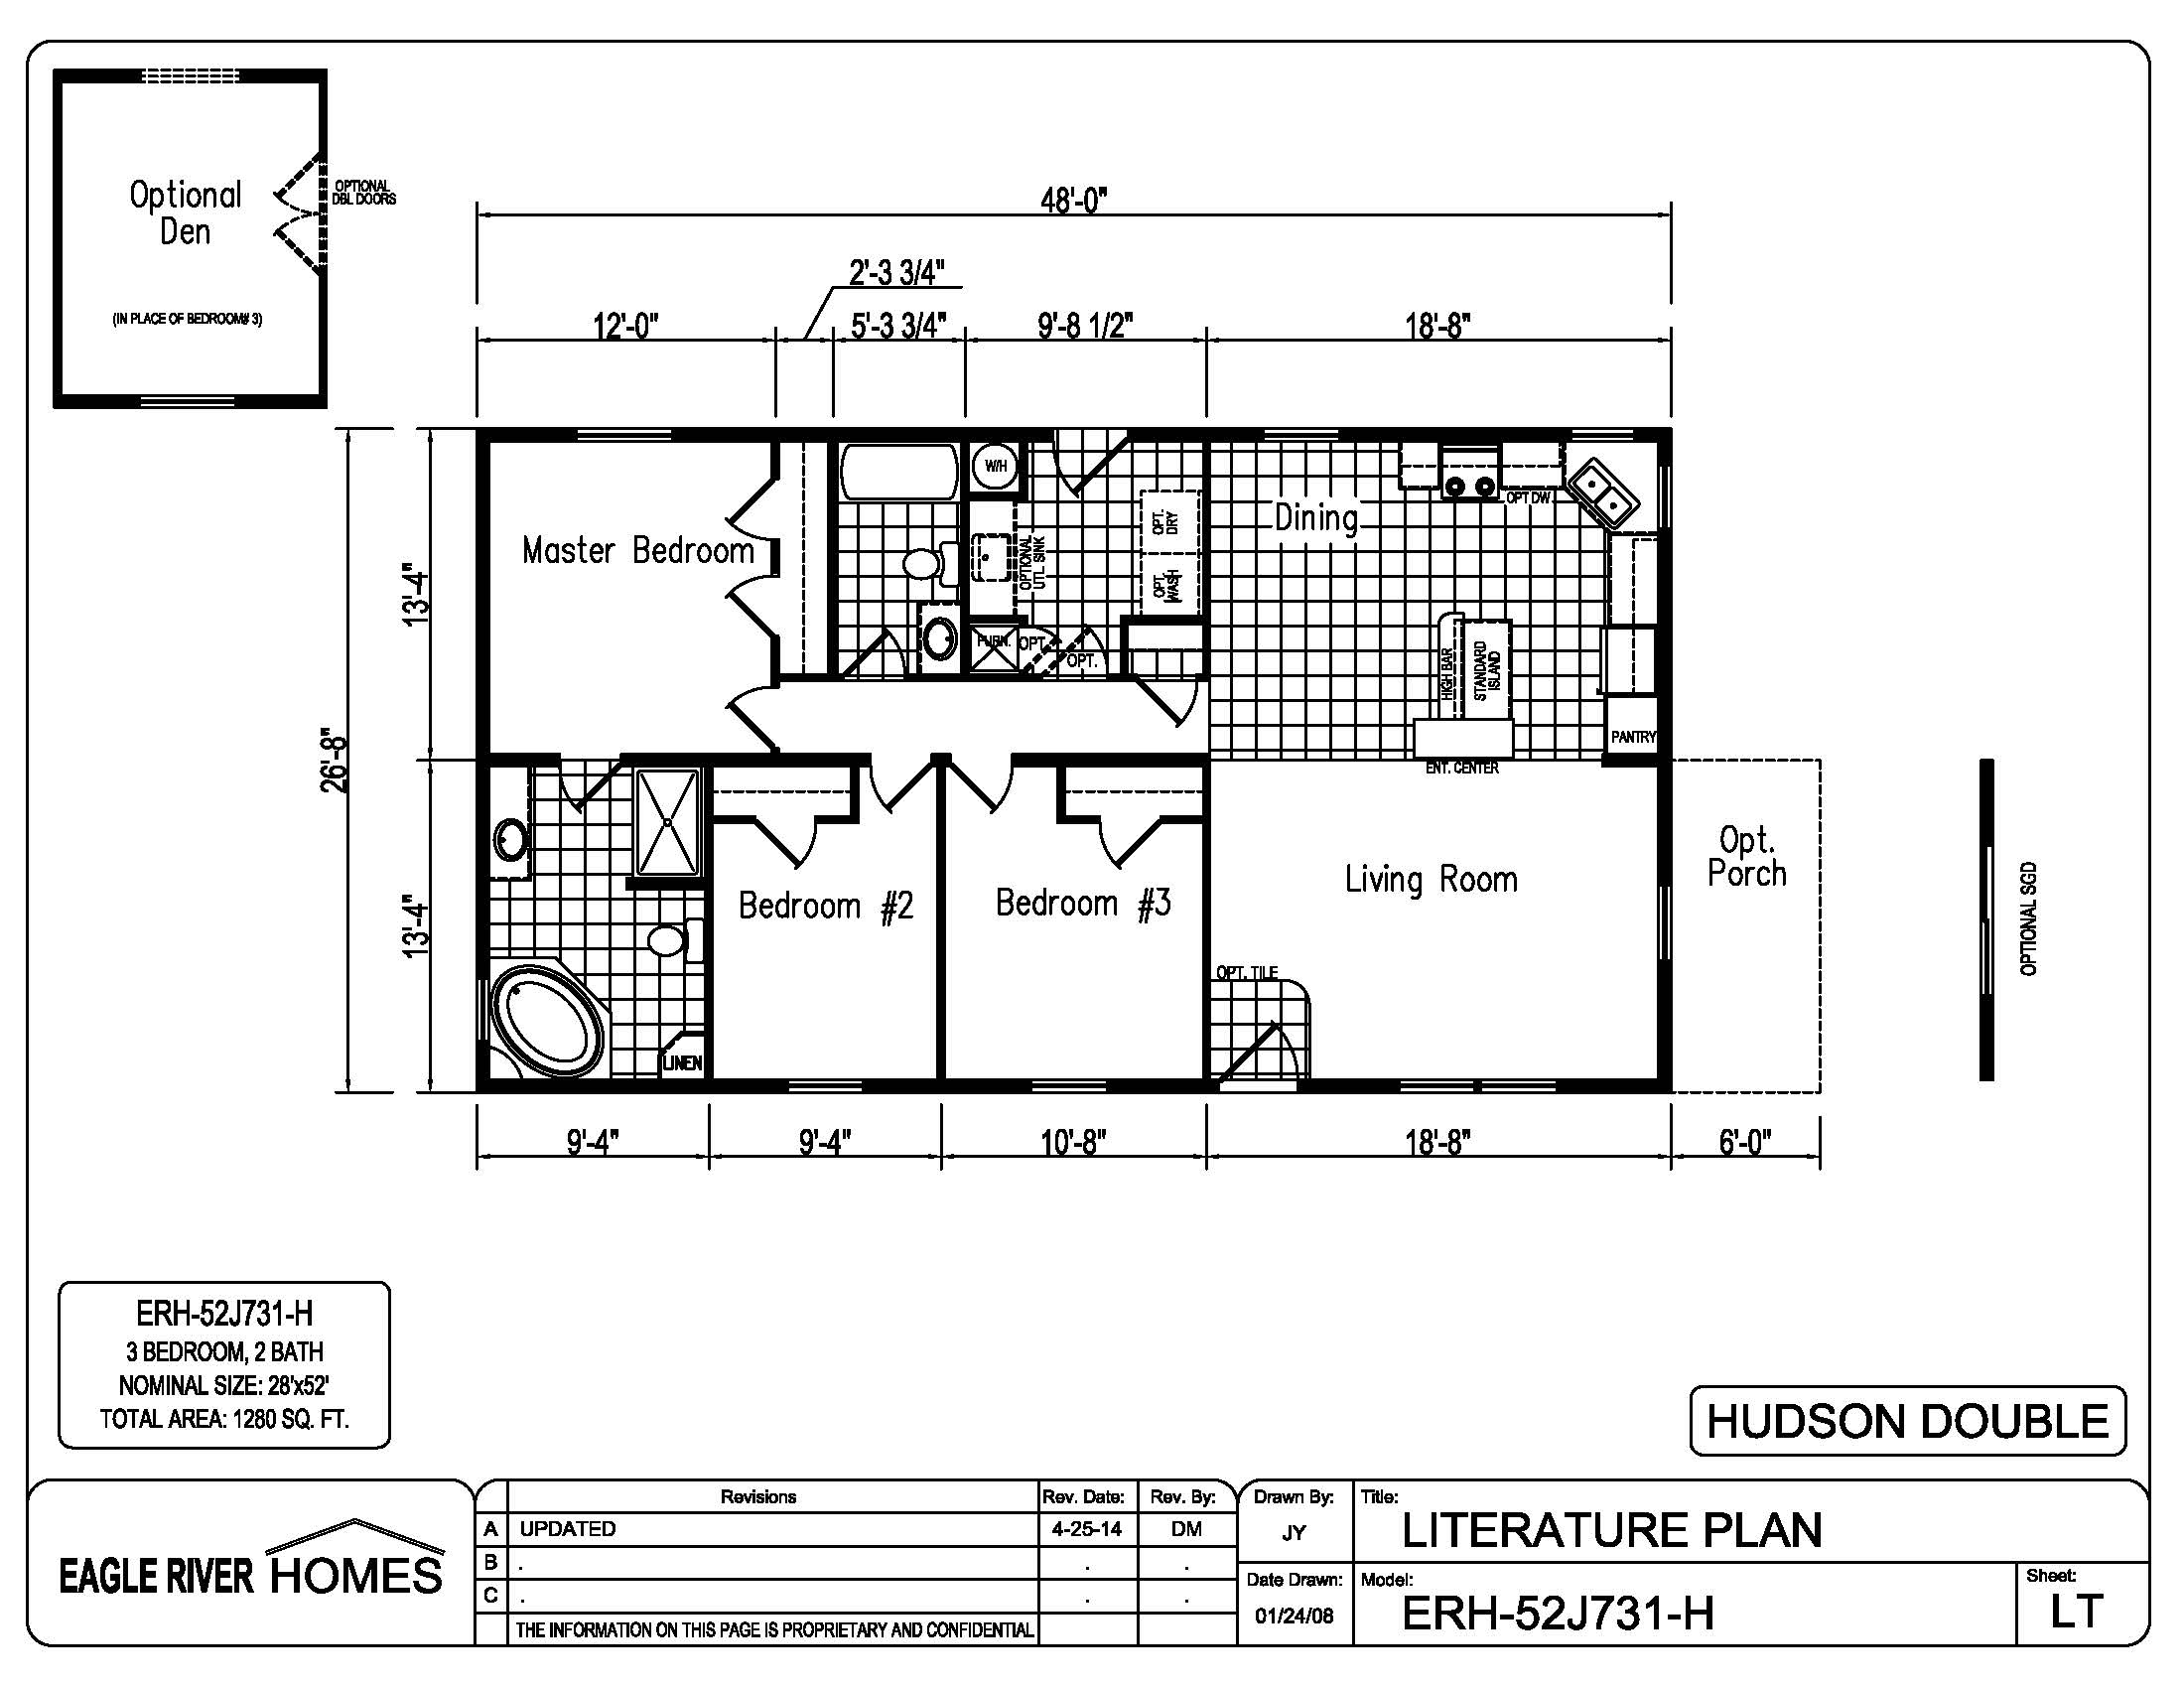 Eagle River Homes' Floor Plan Chooser on